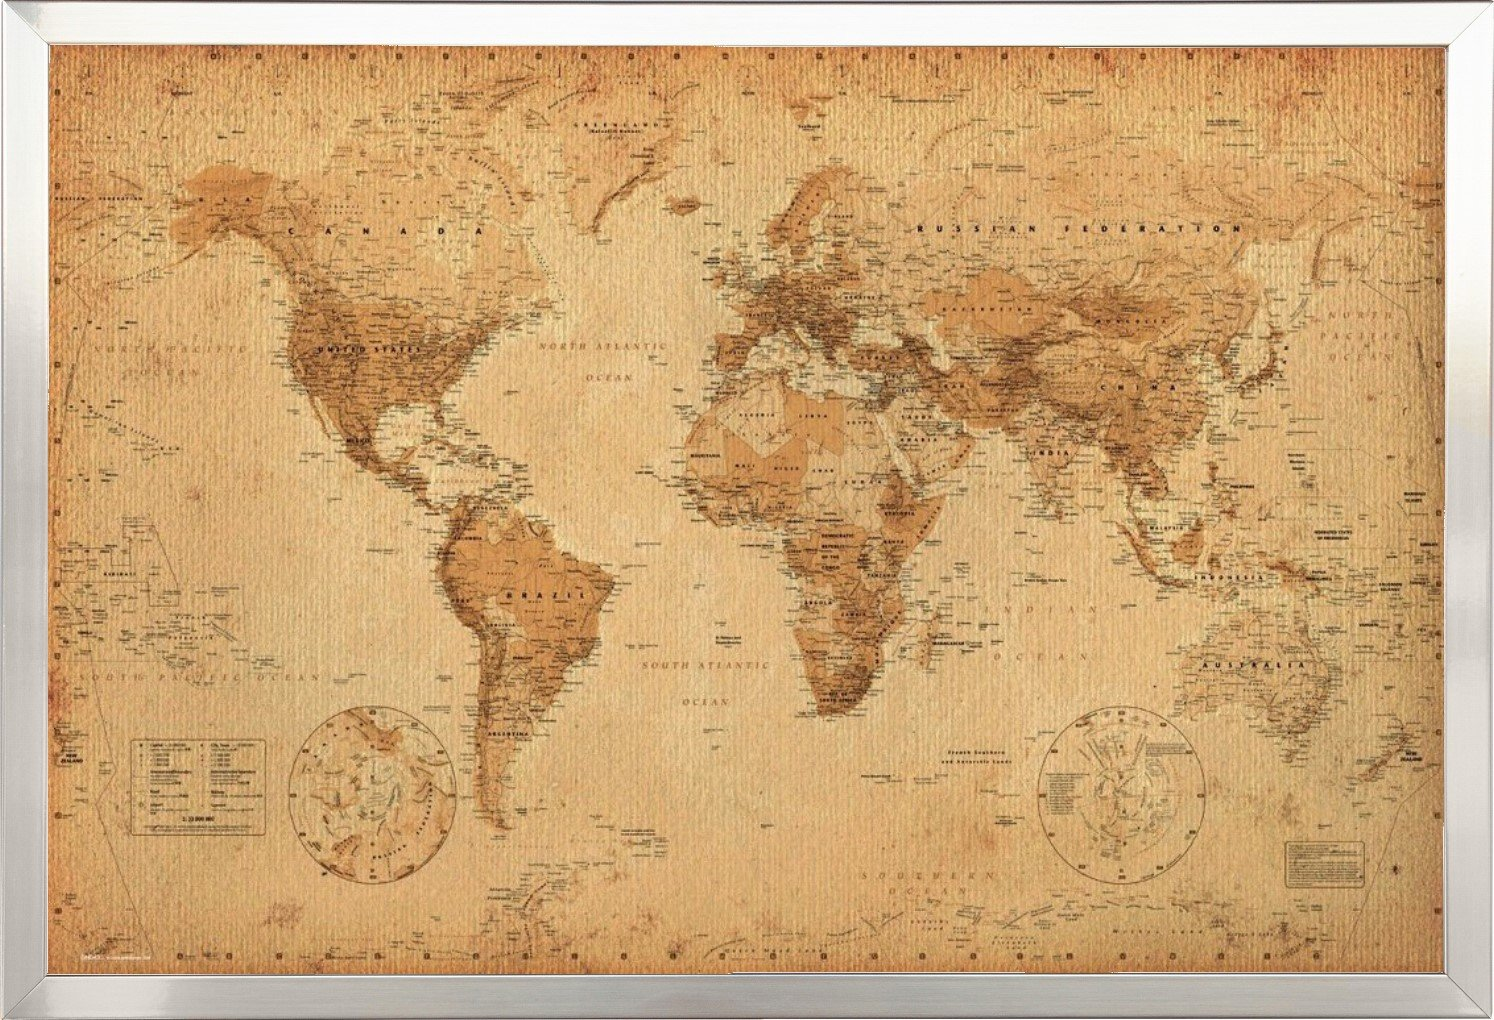 Amazon.com: World Map Vintage Style Poster Print: Posters & Prints